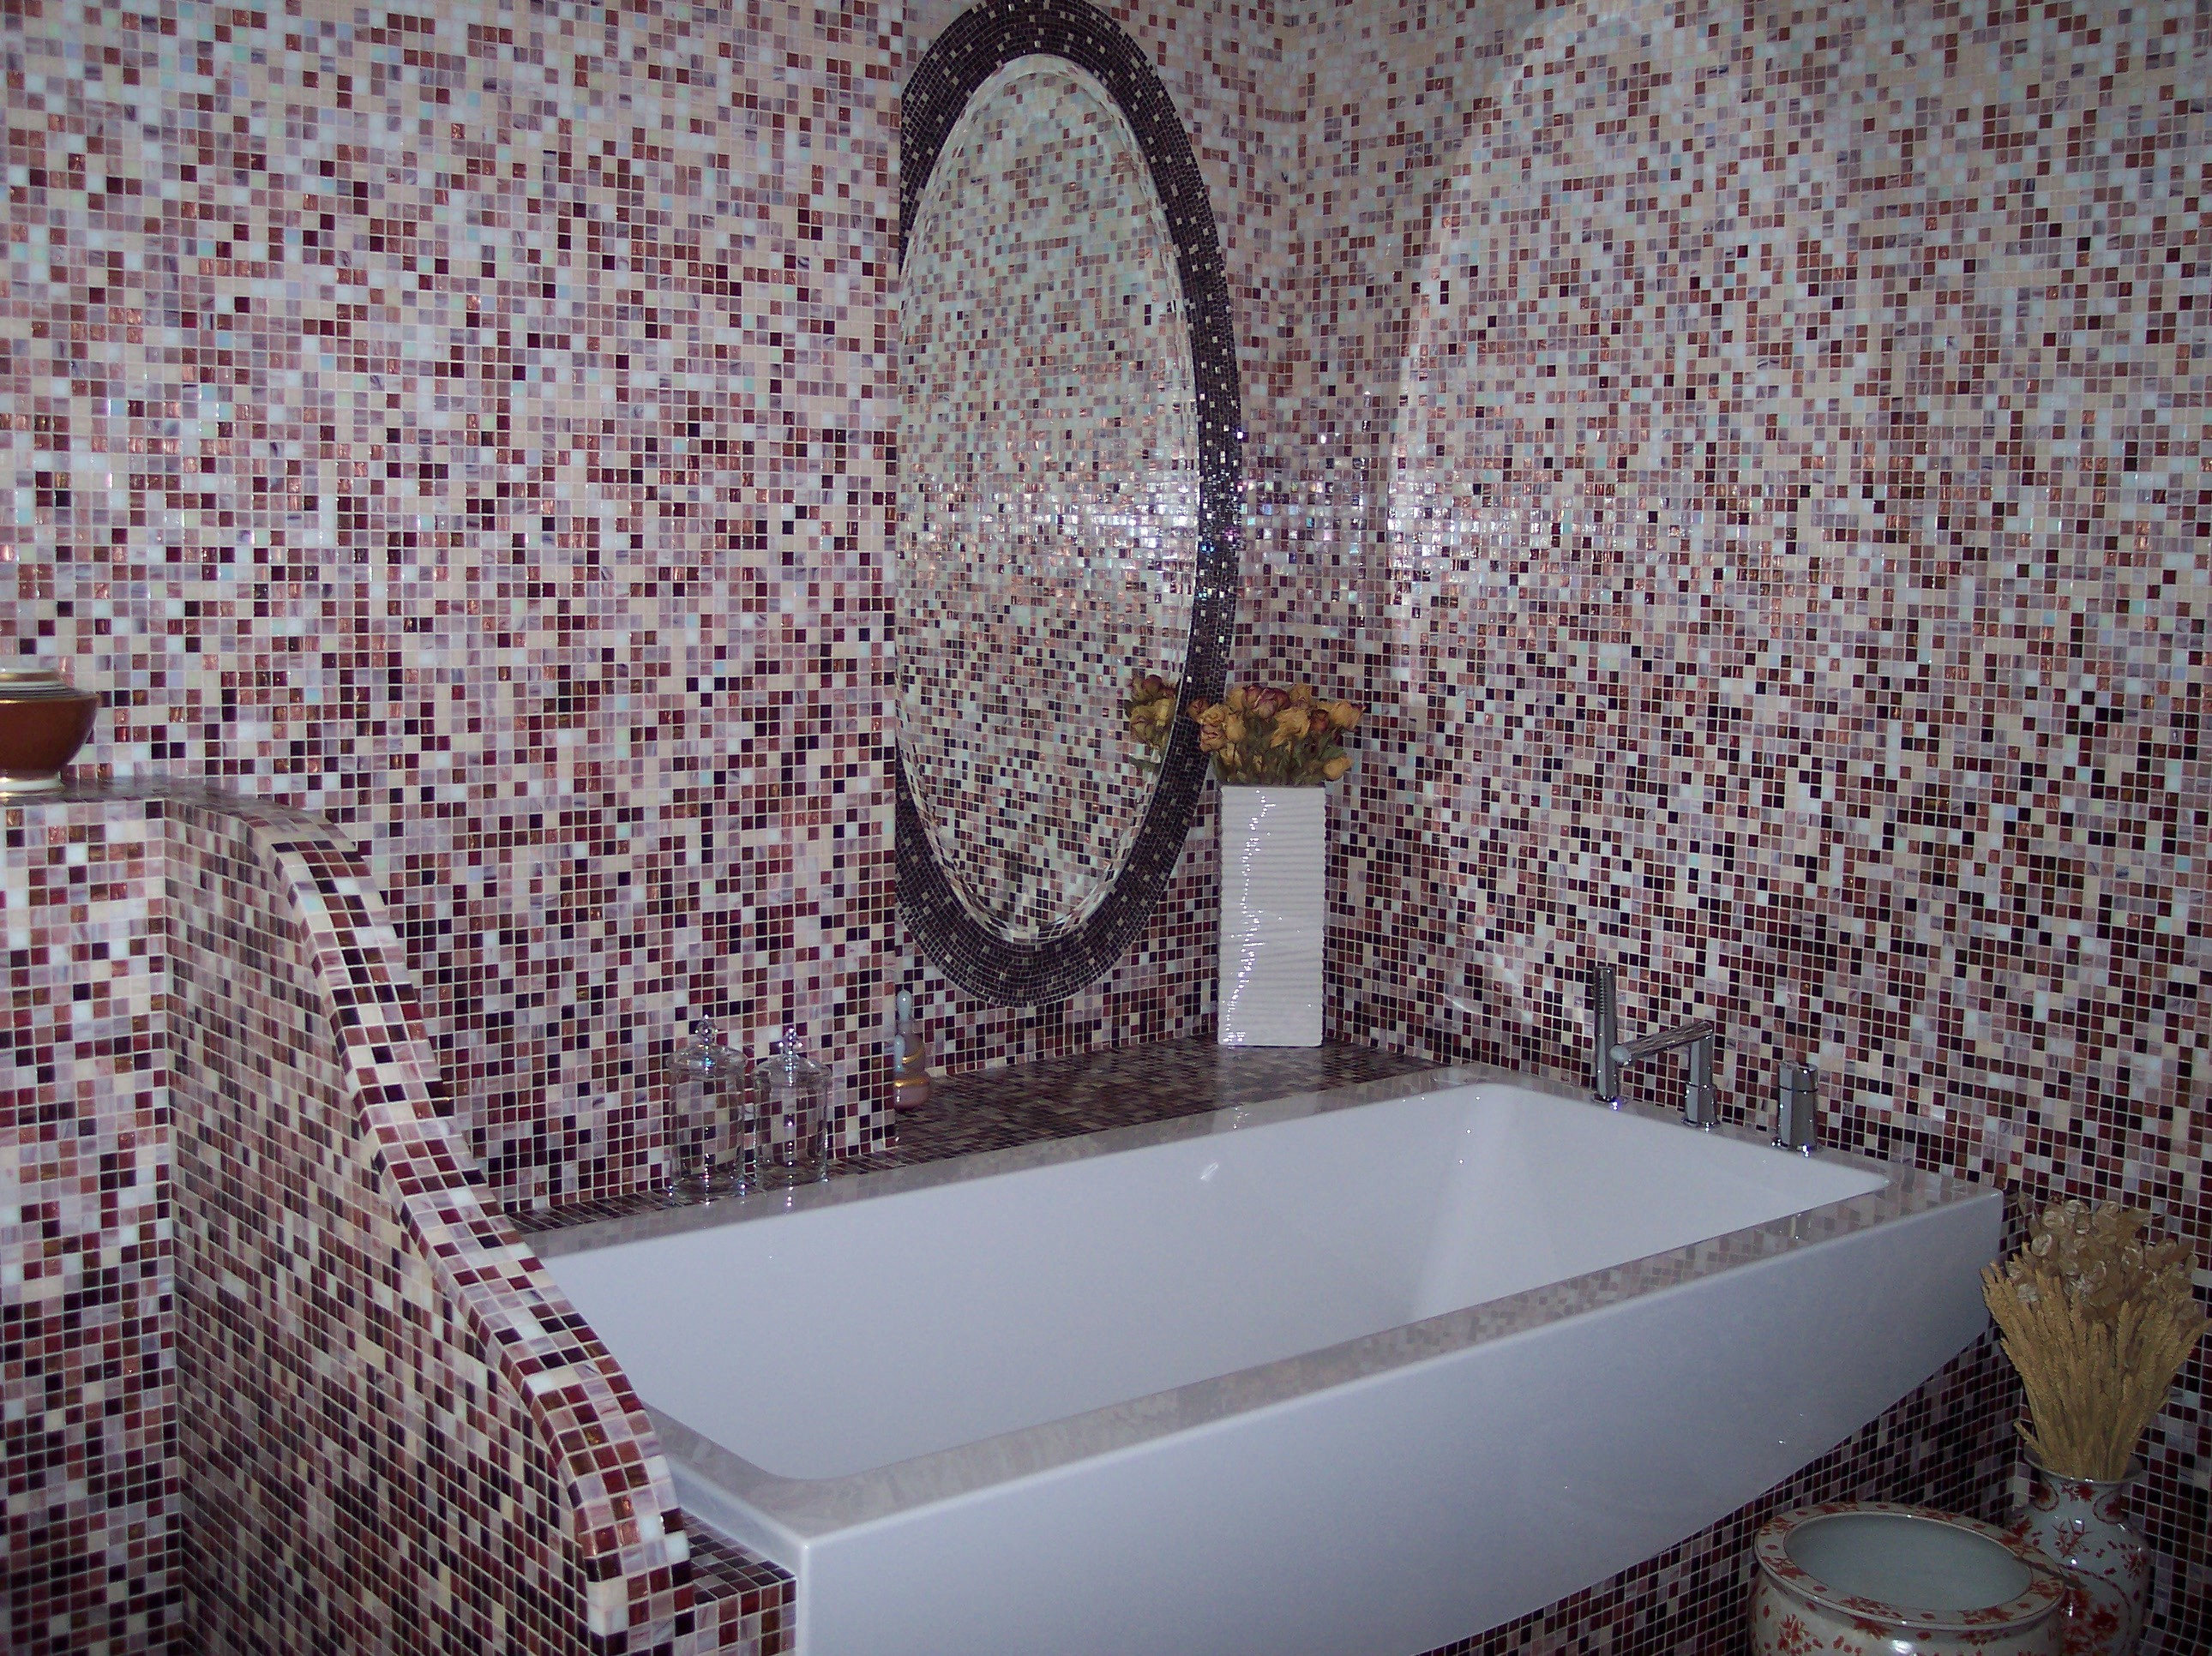 Walls mosaic without cutting, wall in andamento and encrusted mosaic mirror